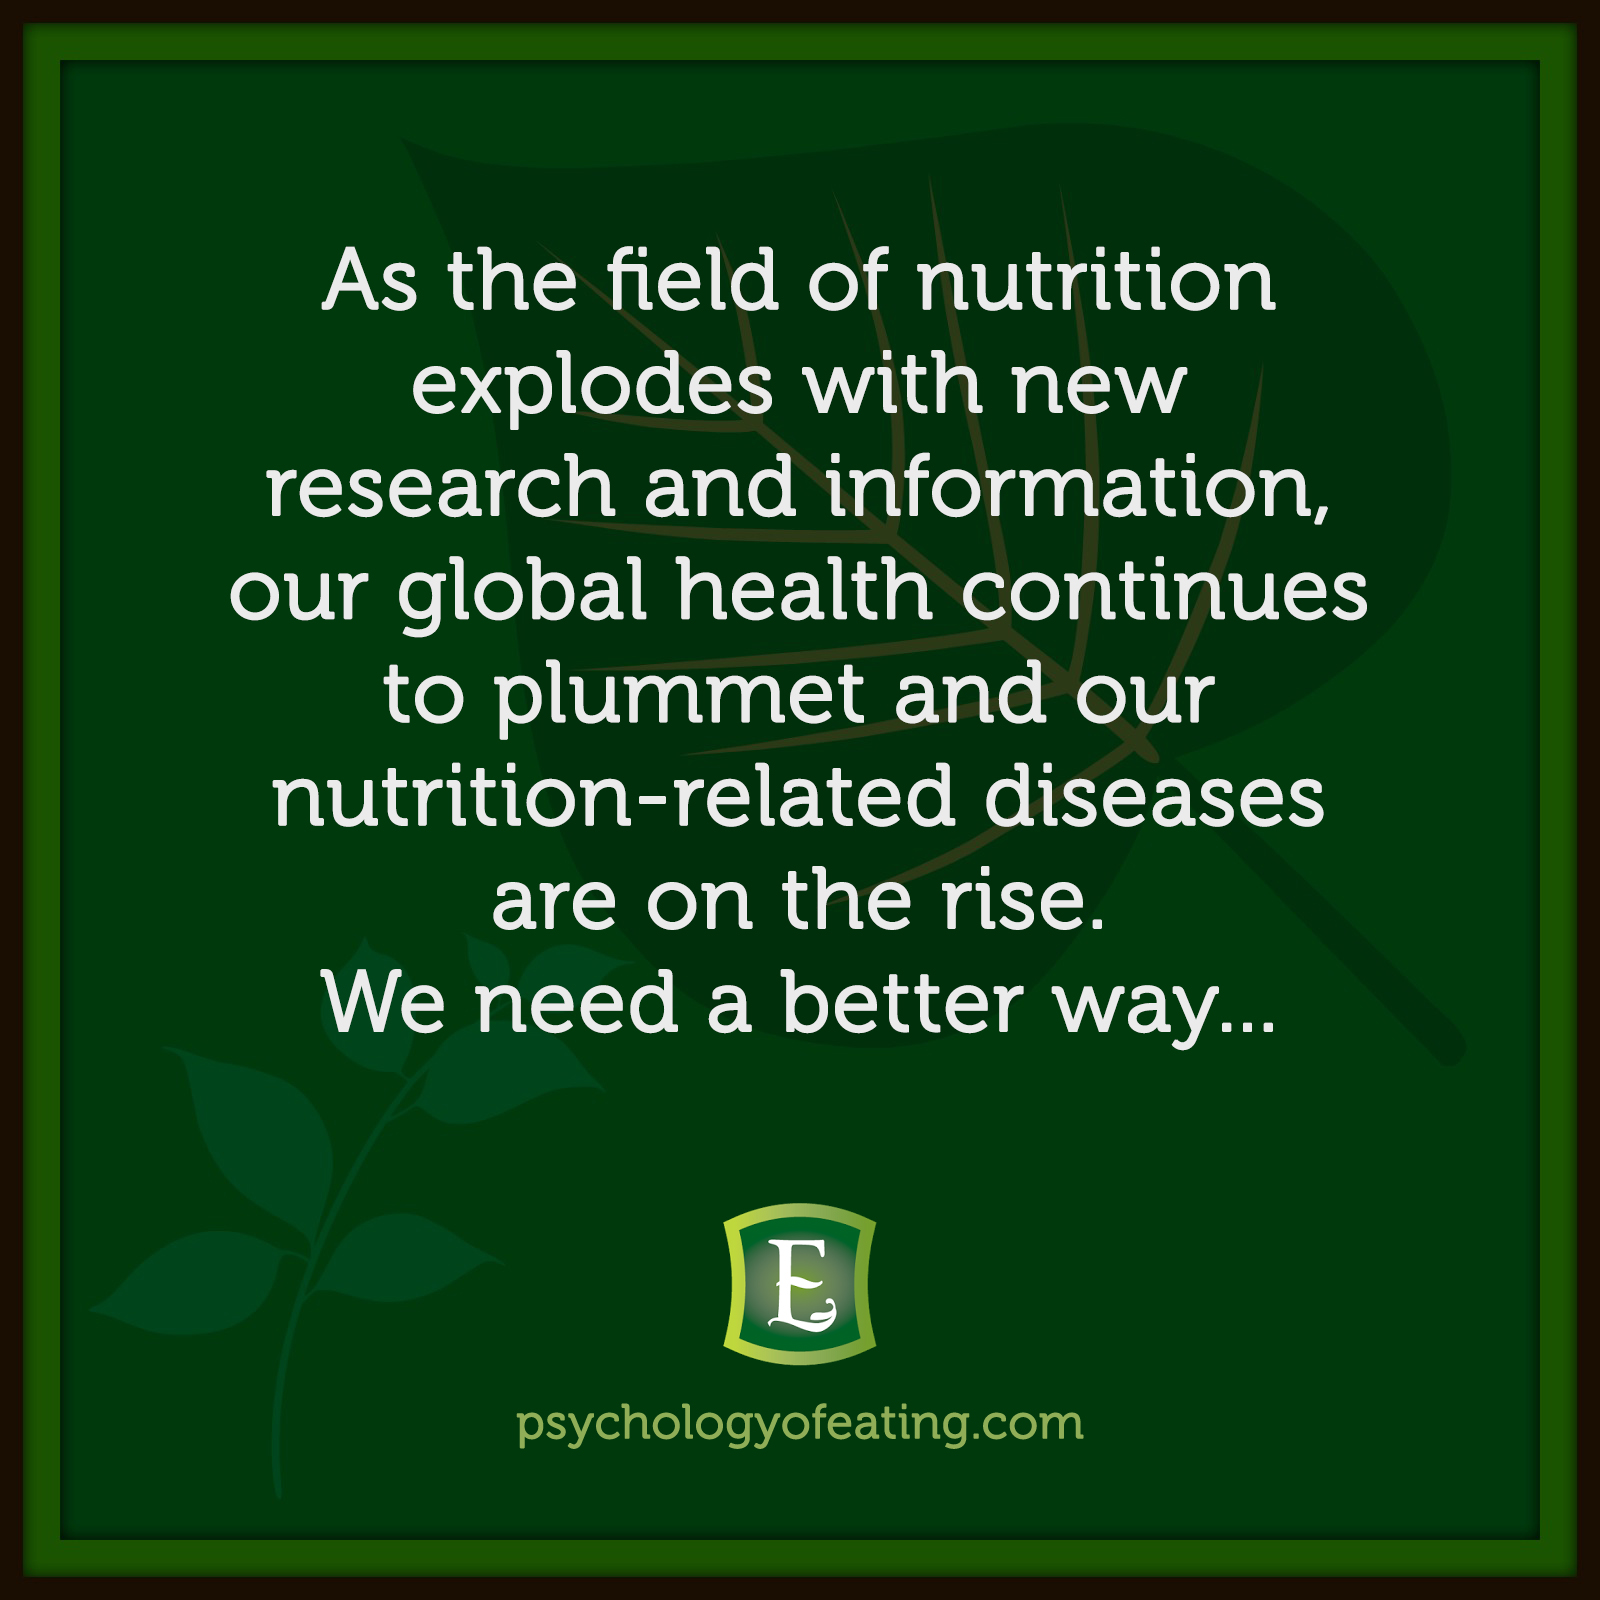 As the field of nutrition explodes with new research and information, our global health continues to plummet and our nutrition-related diseases are on the rise. We need a better way… #health #nutrition #eatingpsychology #IPE